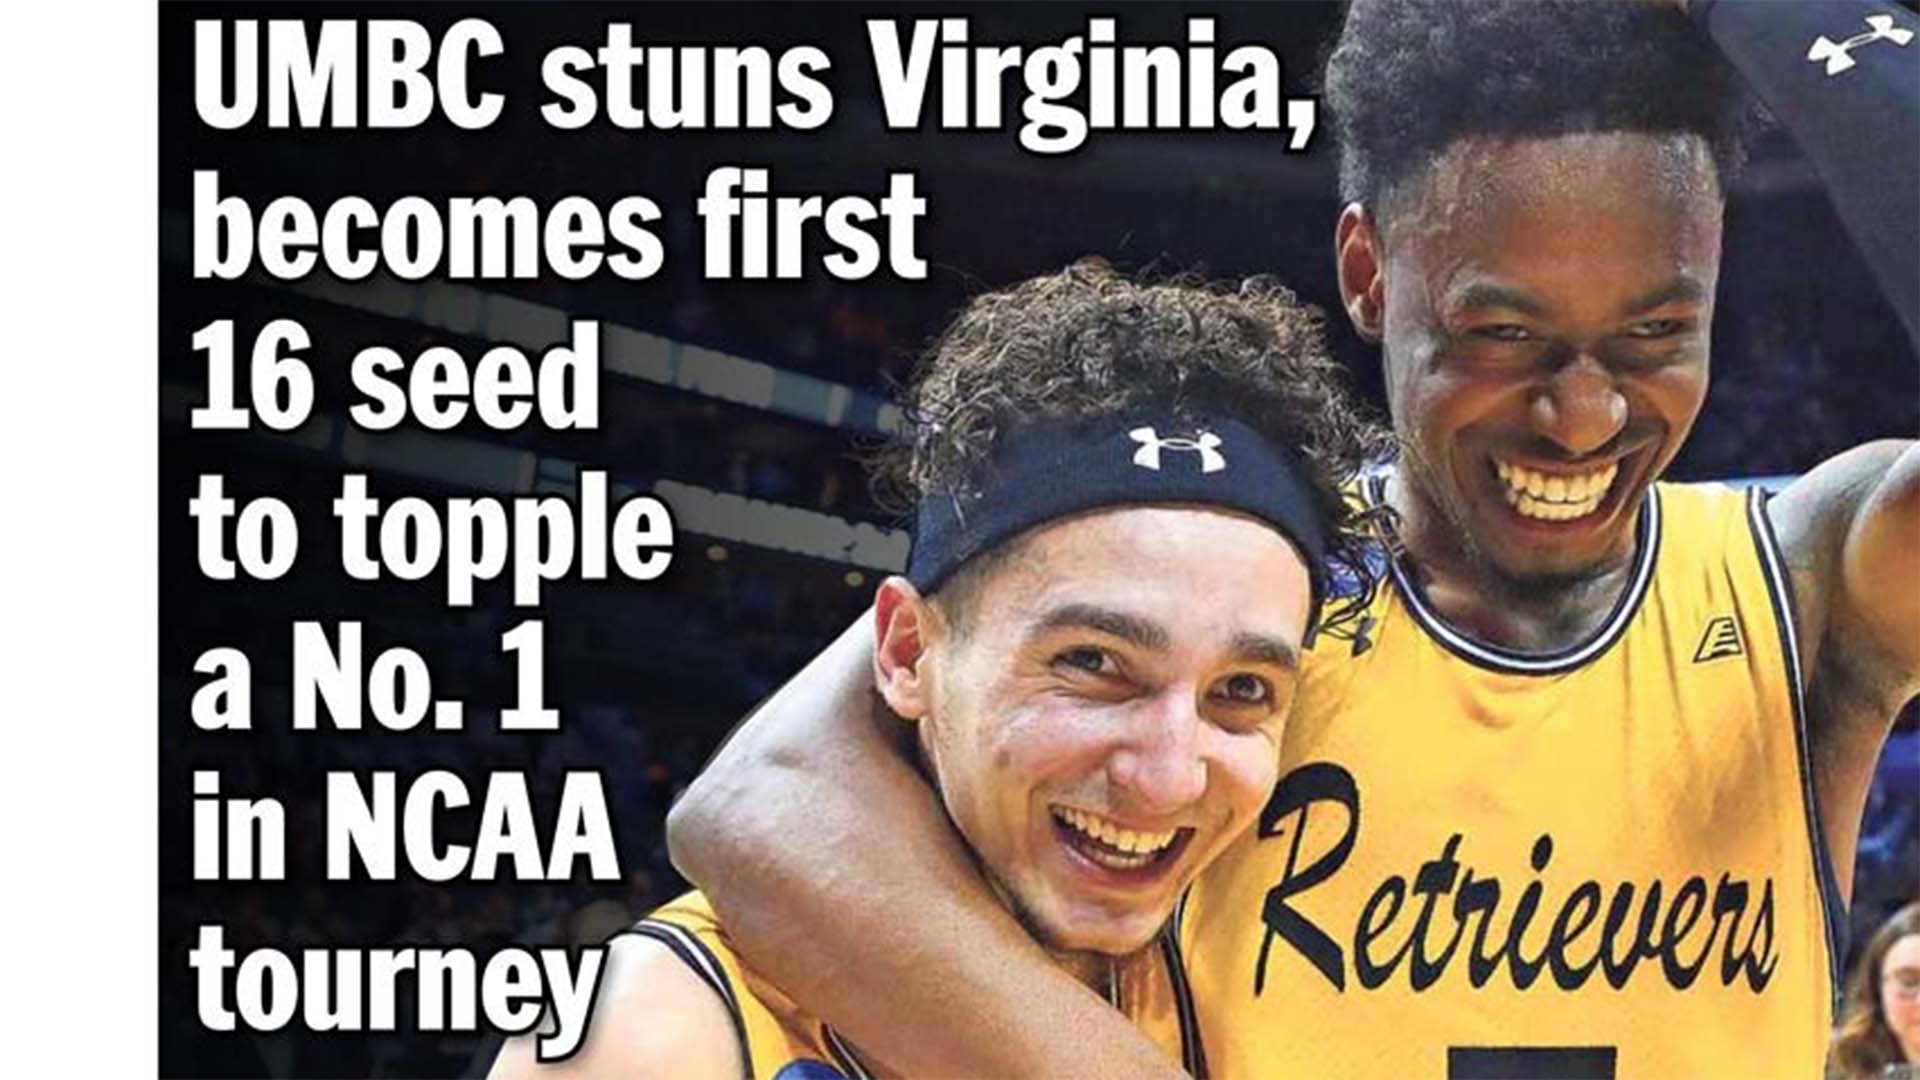 UMBC Upsets Virginia: Where is Maryland-Baltimore County?